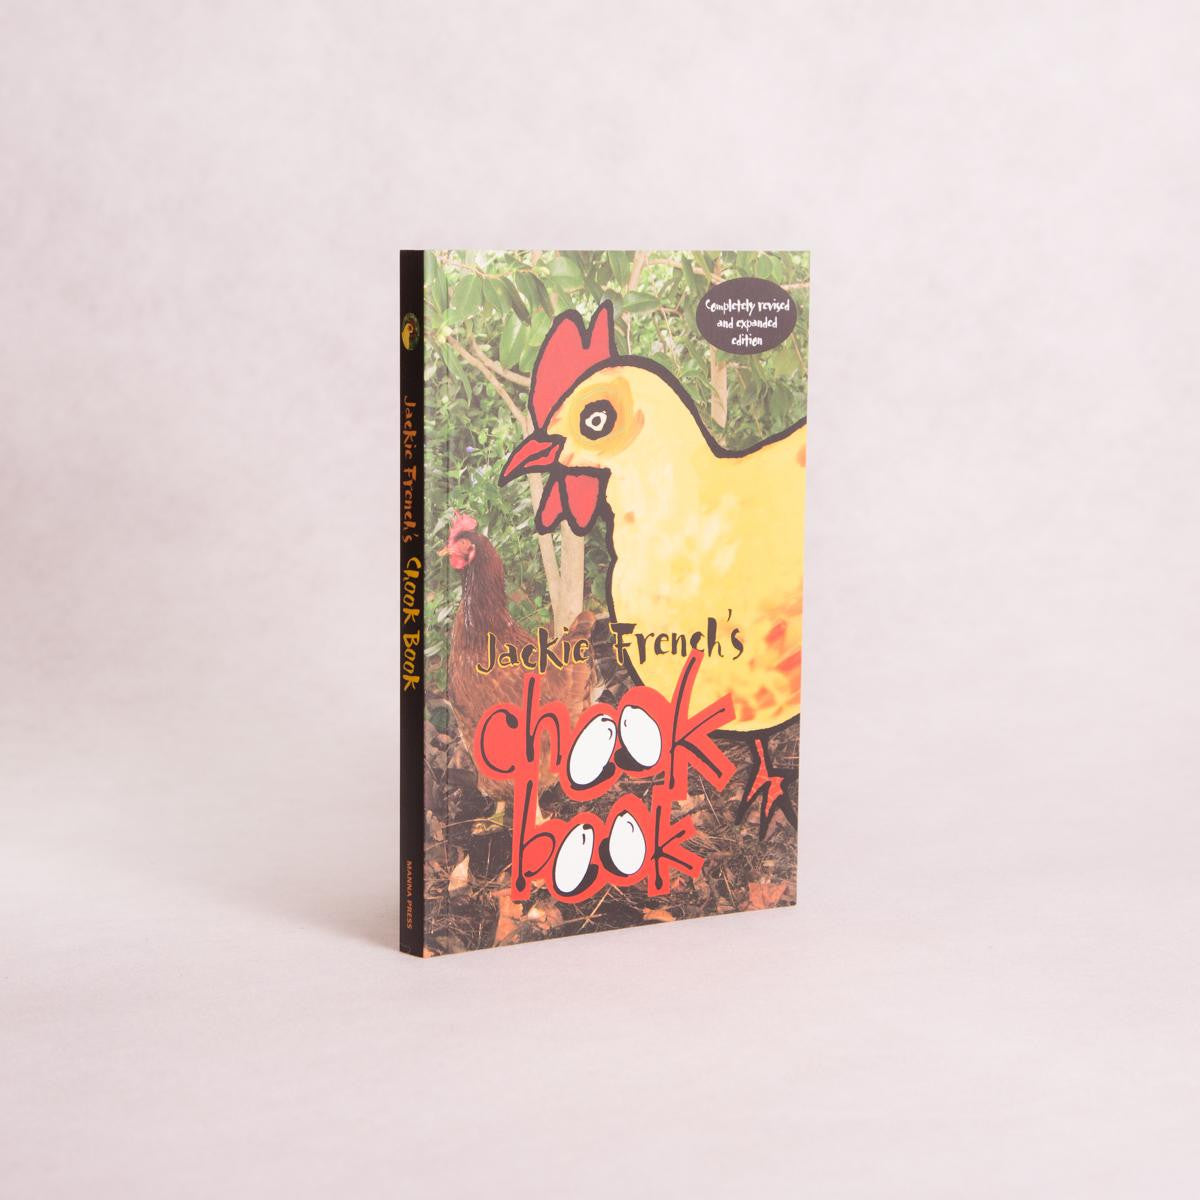 Jackie French's Chook Book | By Jackie French - Book - Throw Some Seeds - Australian gardening gifts and eco products online!